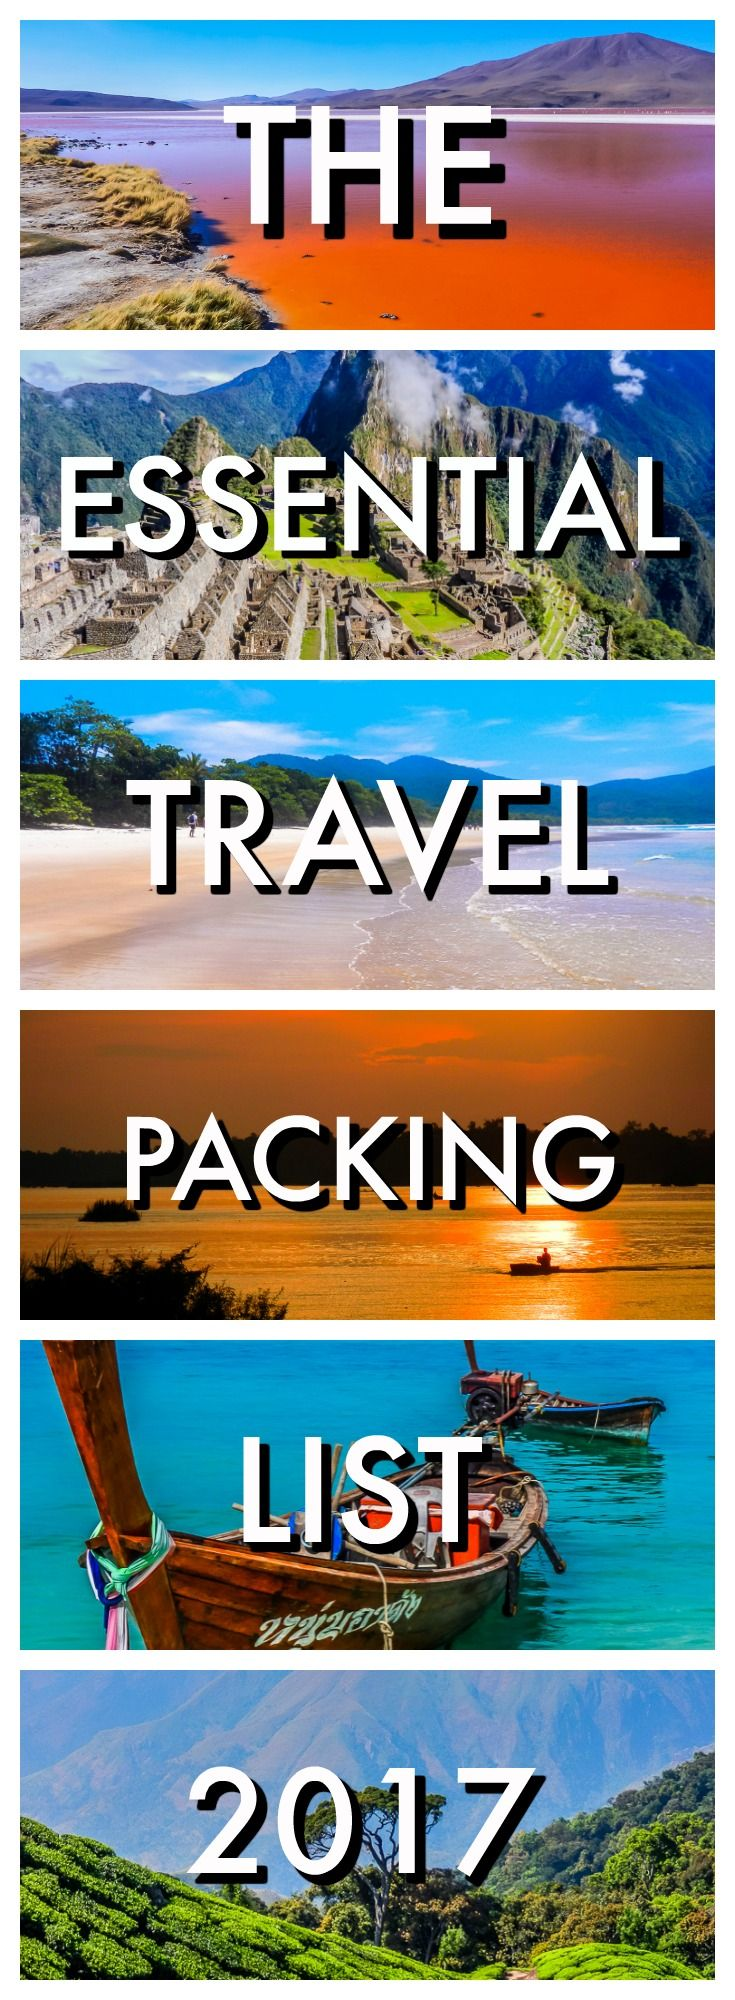 You won't forget anything with our Essential Travel Packing List for 2017. We've got everything covered for a short vacation or epic around the world trip. Travel Tips | Best Travel advice | Packing for Travel | What you need to pack when travelling | Essentials for travelling | Top Packing advice | What do I need to pack | Essential packing list |